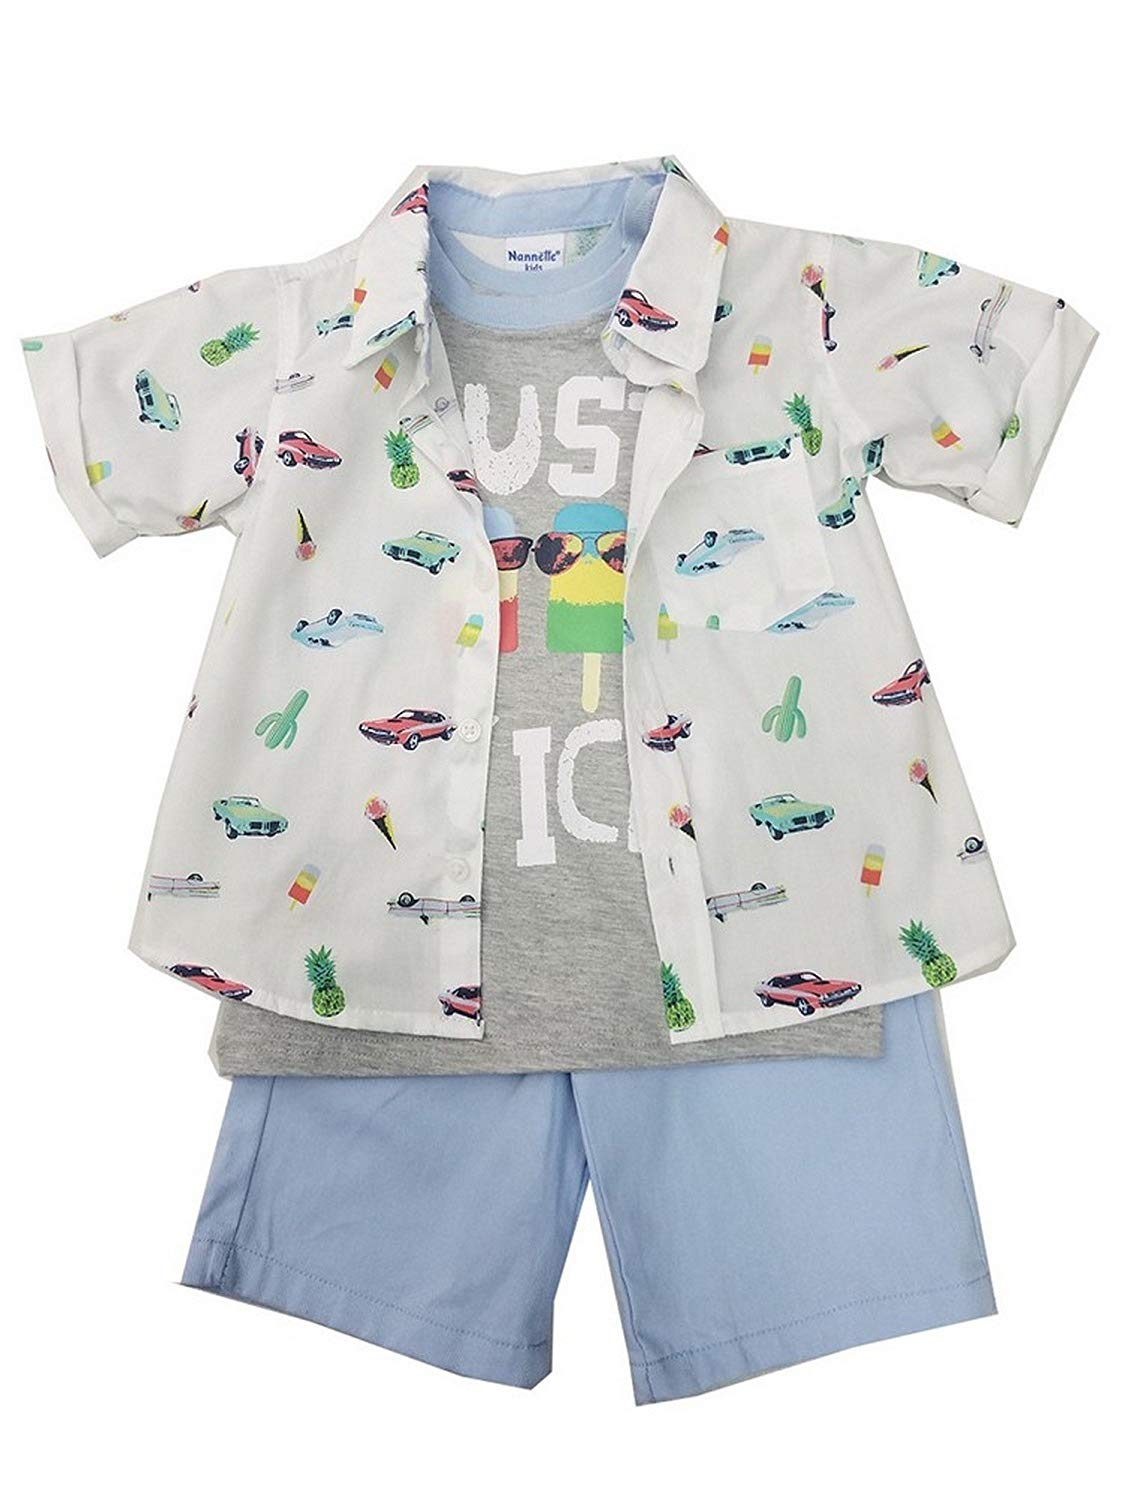 662687ad448bd Get Quotations · Children App Little Boys White Cars Print Shirt T-Shirt 3  Pc Shorts Outfit 4